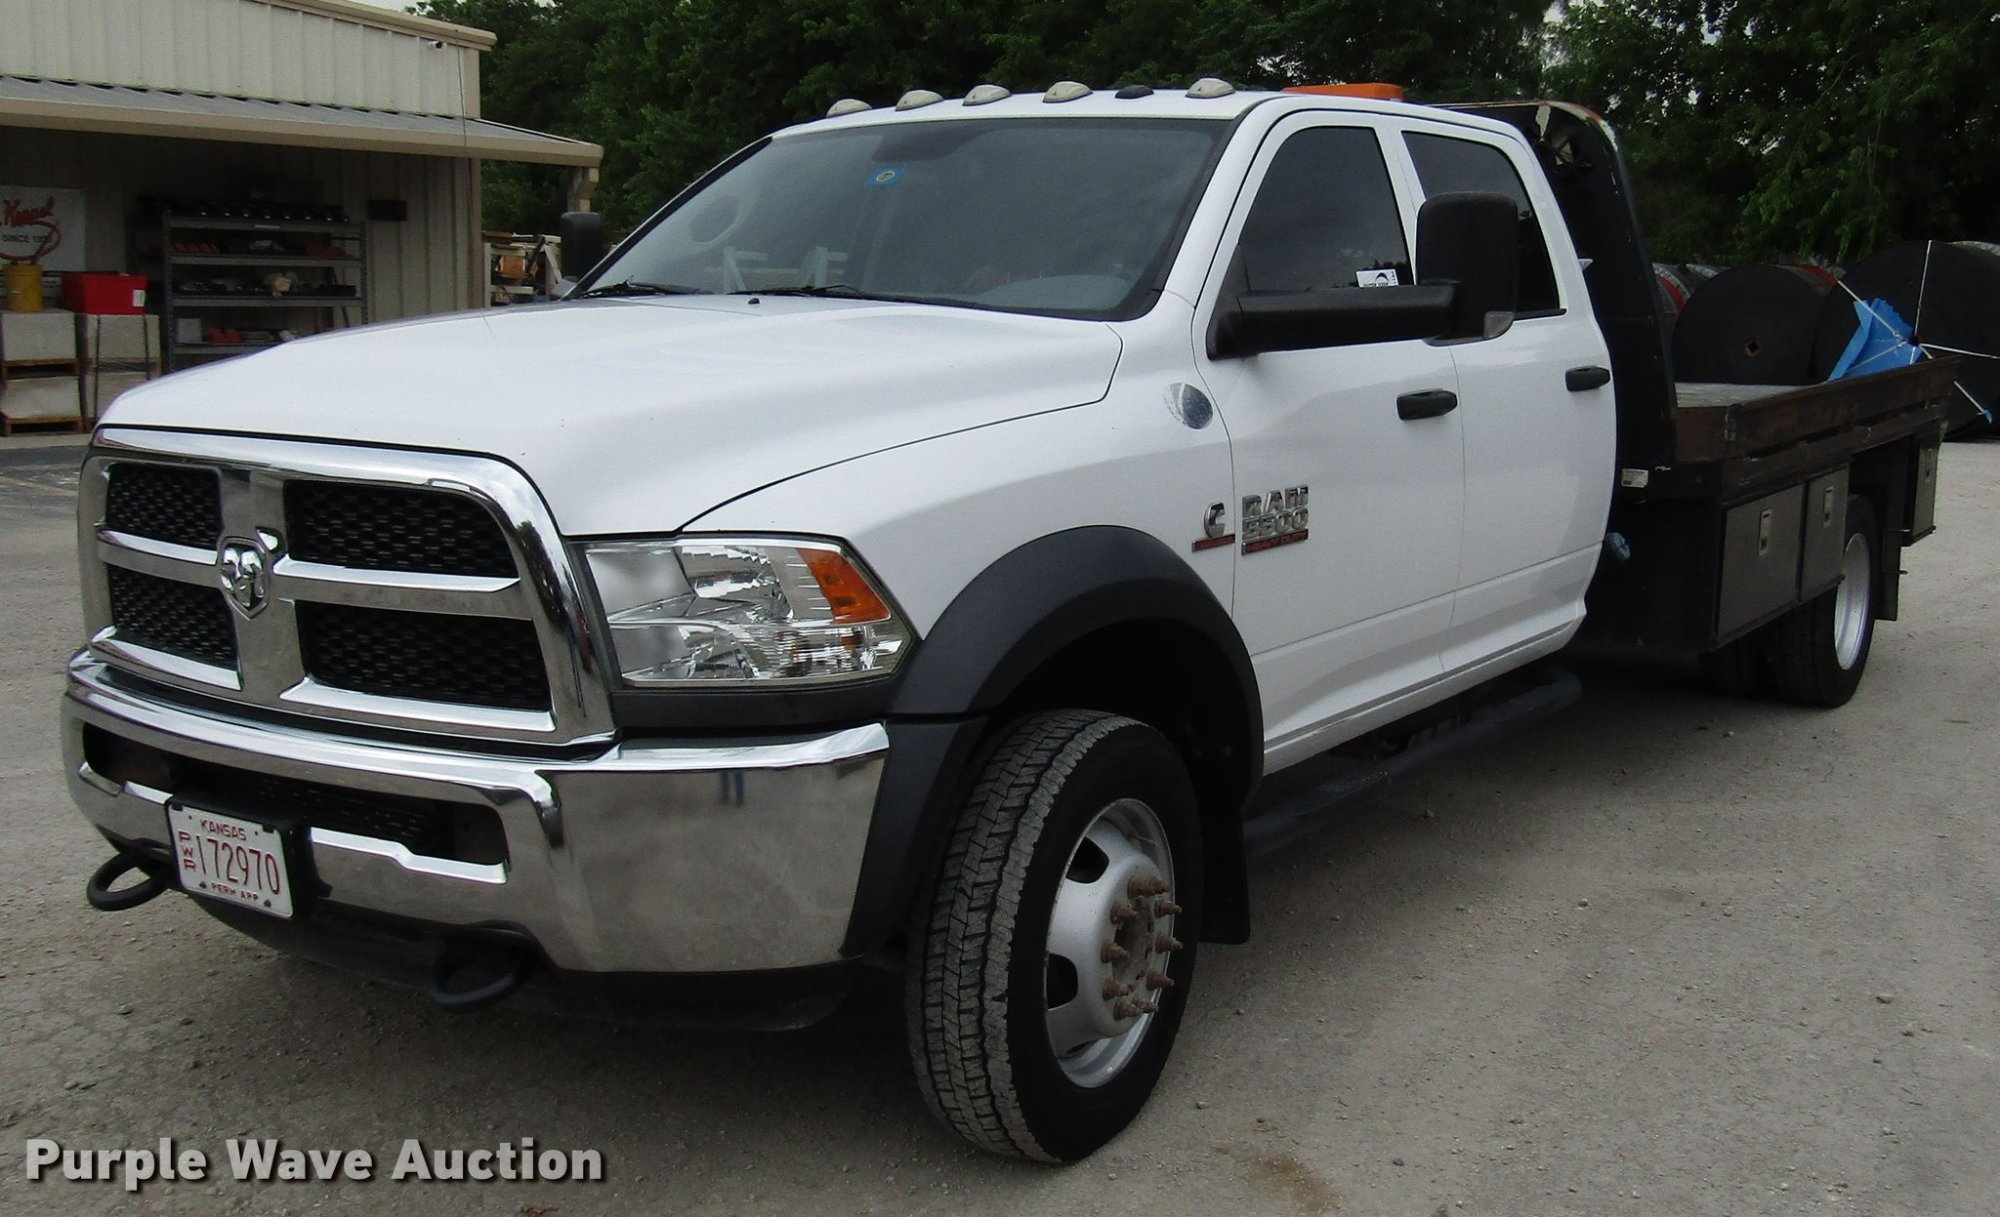 hight resolution of dg1188 image for item dg1188 2014 dodge ram 5500